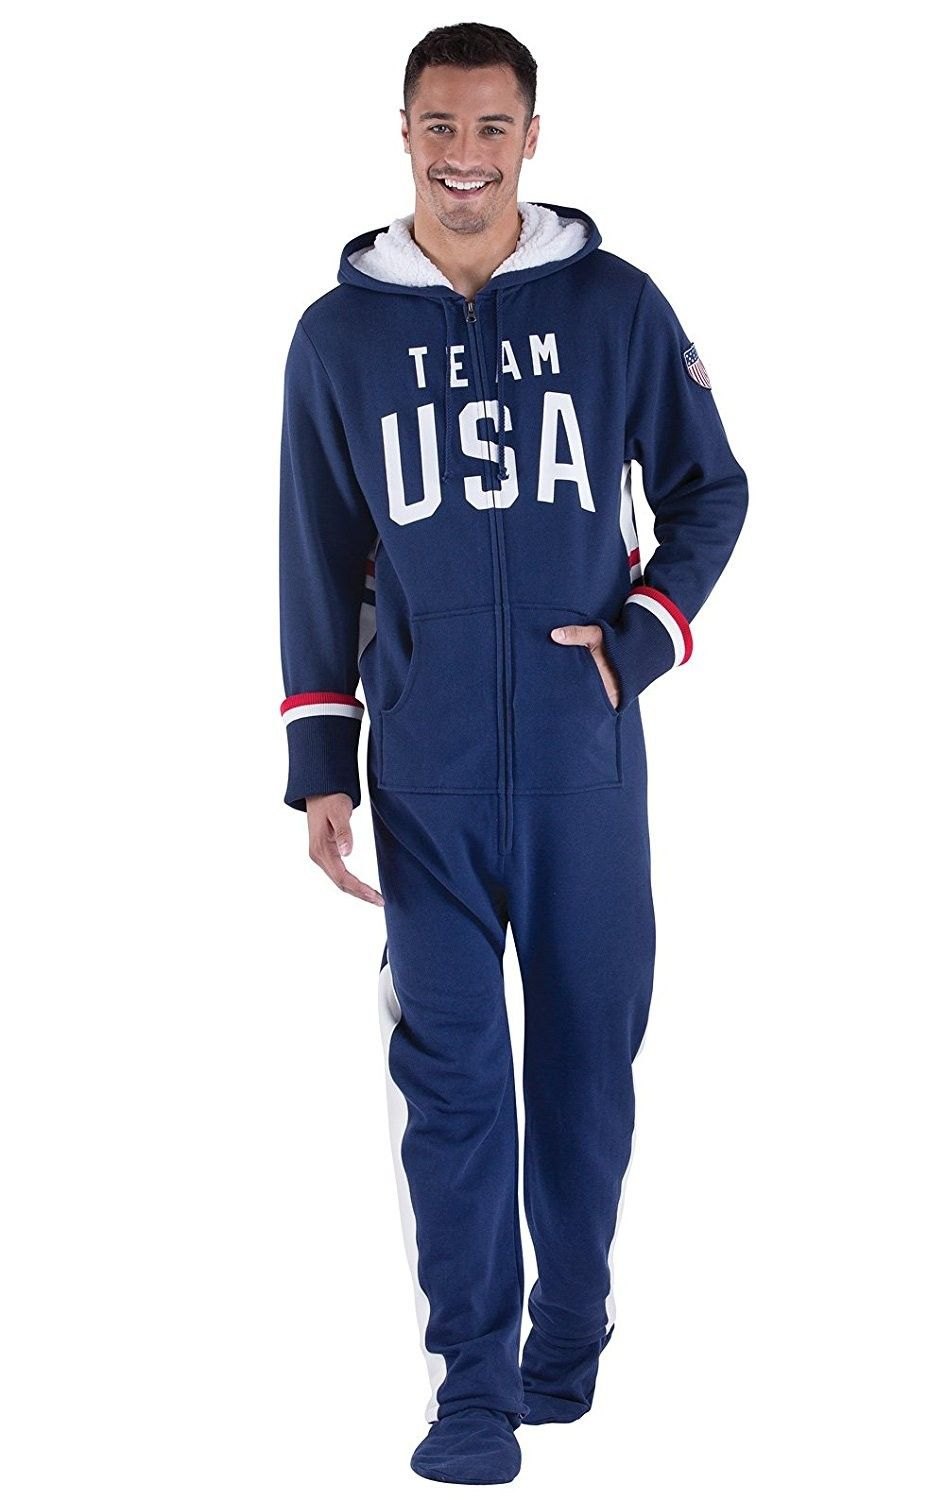 Team Usa Hooded Onesie Footed Pajamas For Men Navy Blue Blue Co17yuwzl4u Mens Outfits Mens Pajamas Mens Flannel Pajamas [ 1500 x 945 Pixel ]